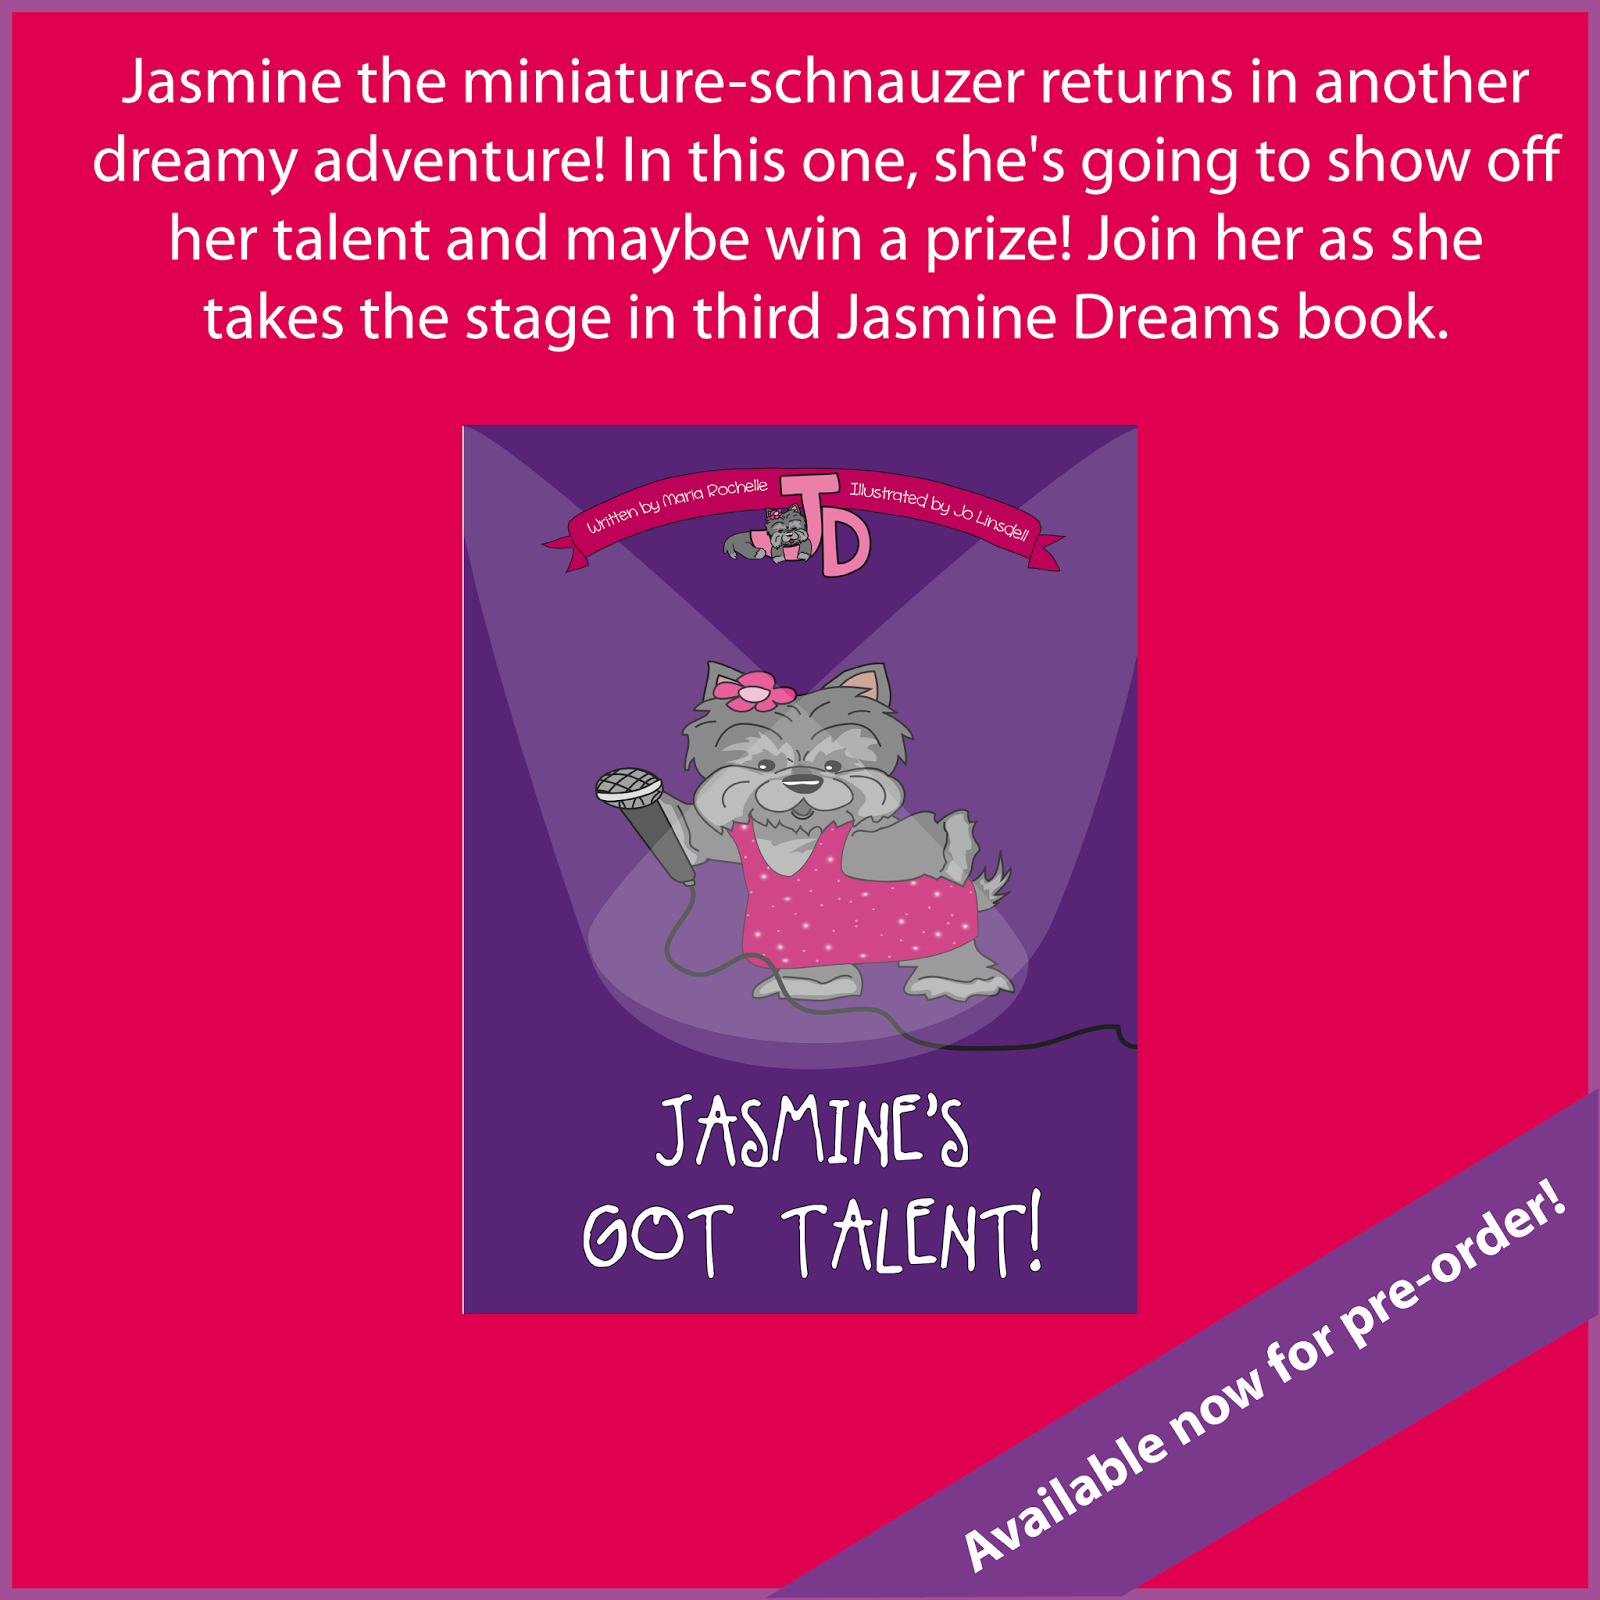 Jasmine's Got Talent! written by Maria Rochelle, illustrated by Jo Linsdell. Available now for pre-order